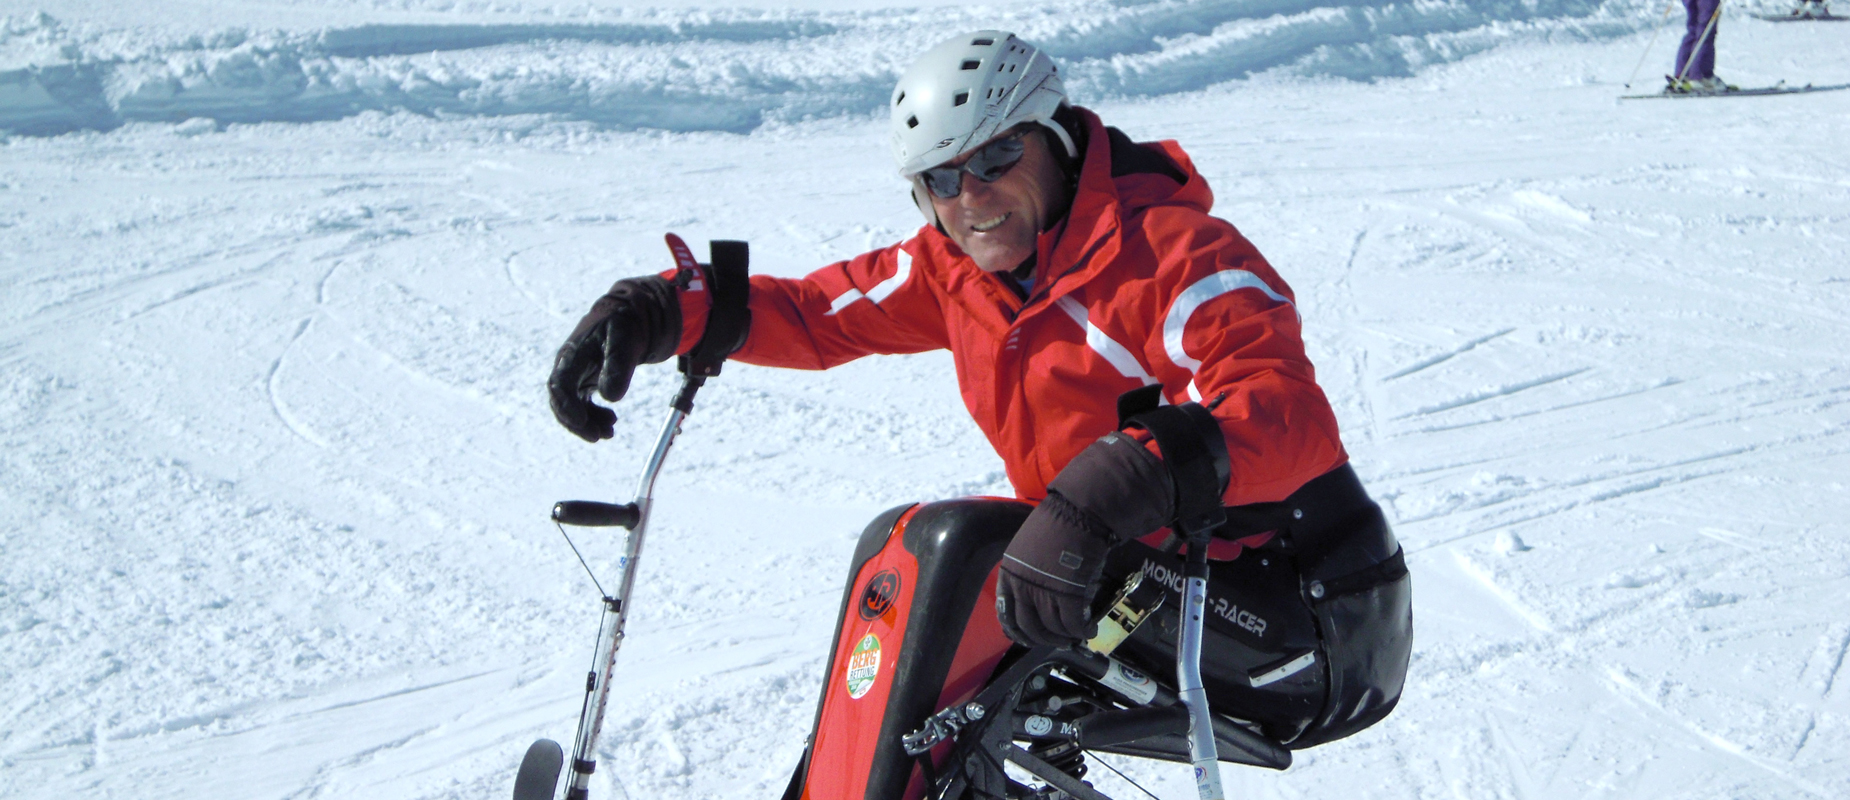 Sepp Margreiter State certified ski instructor and ski guide